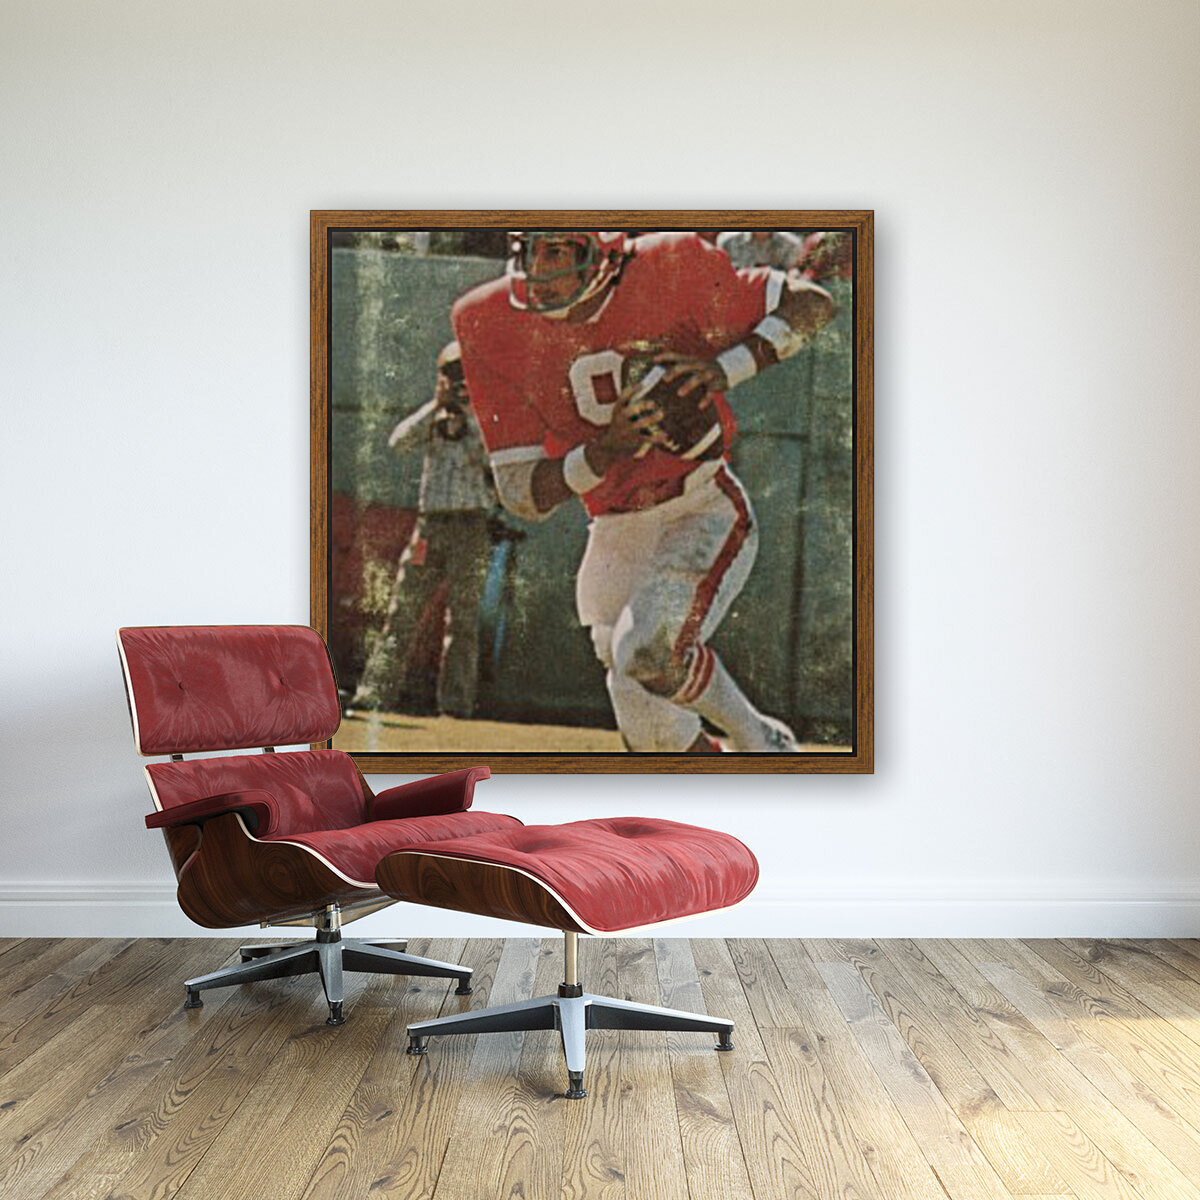 1977 nc state wolfpack retro college football poster johnny evans qb  Art